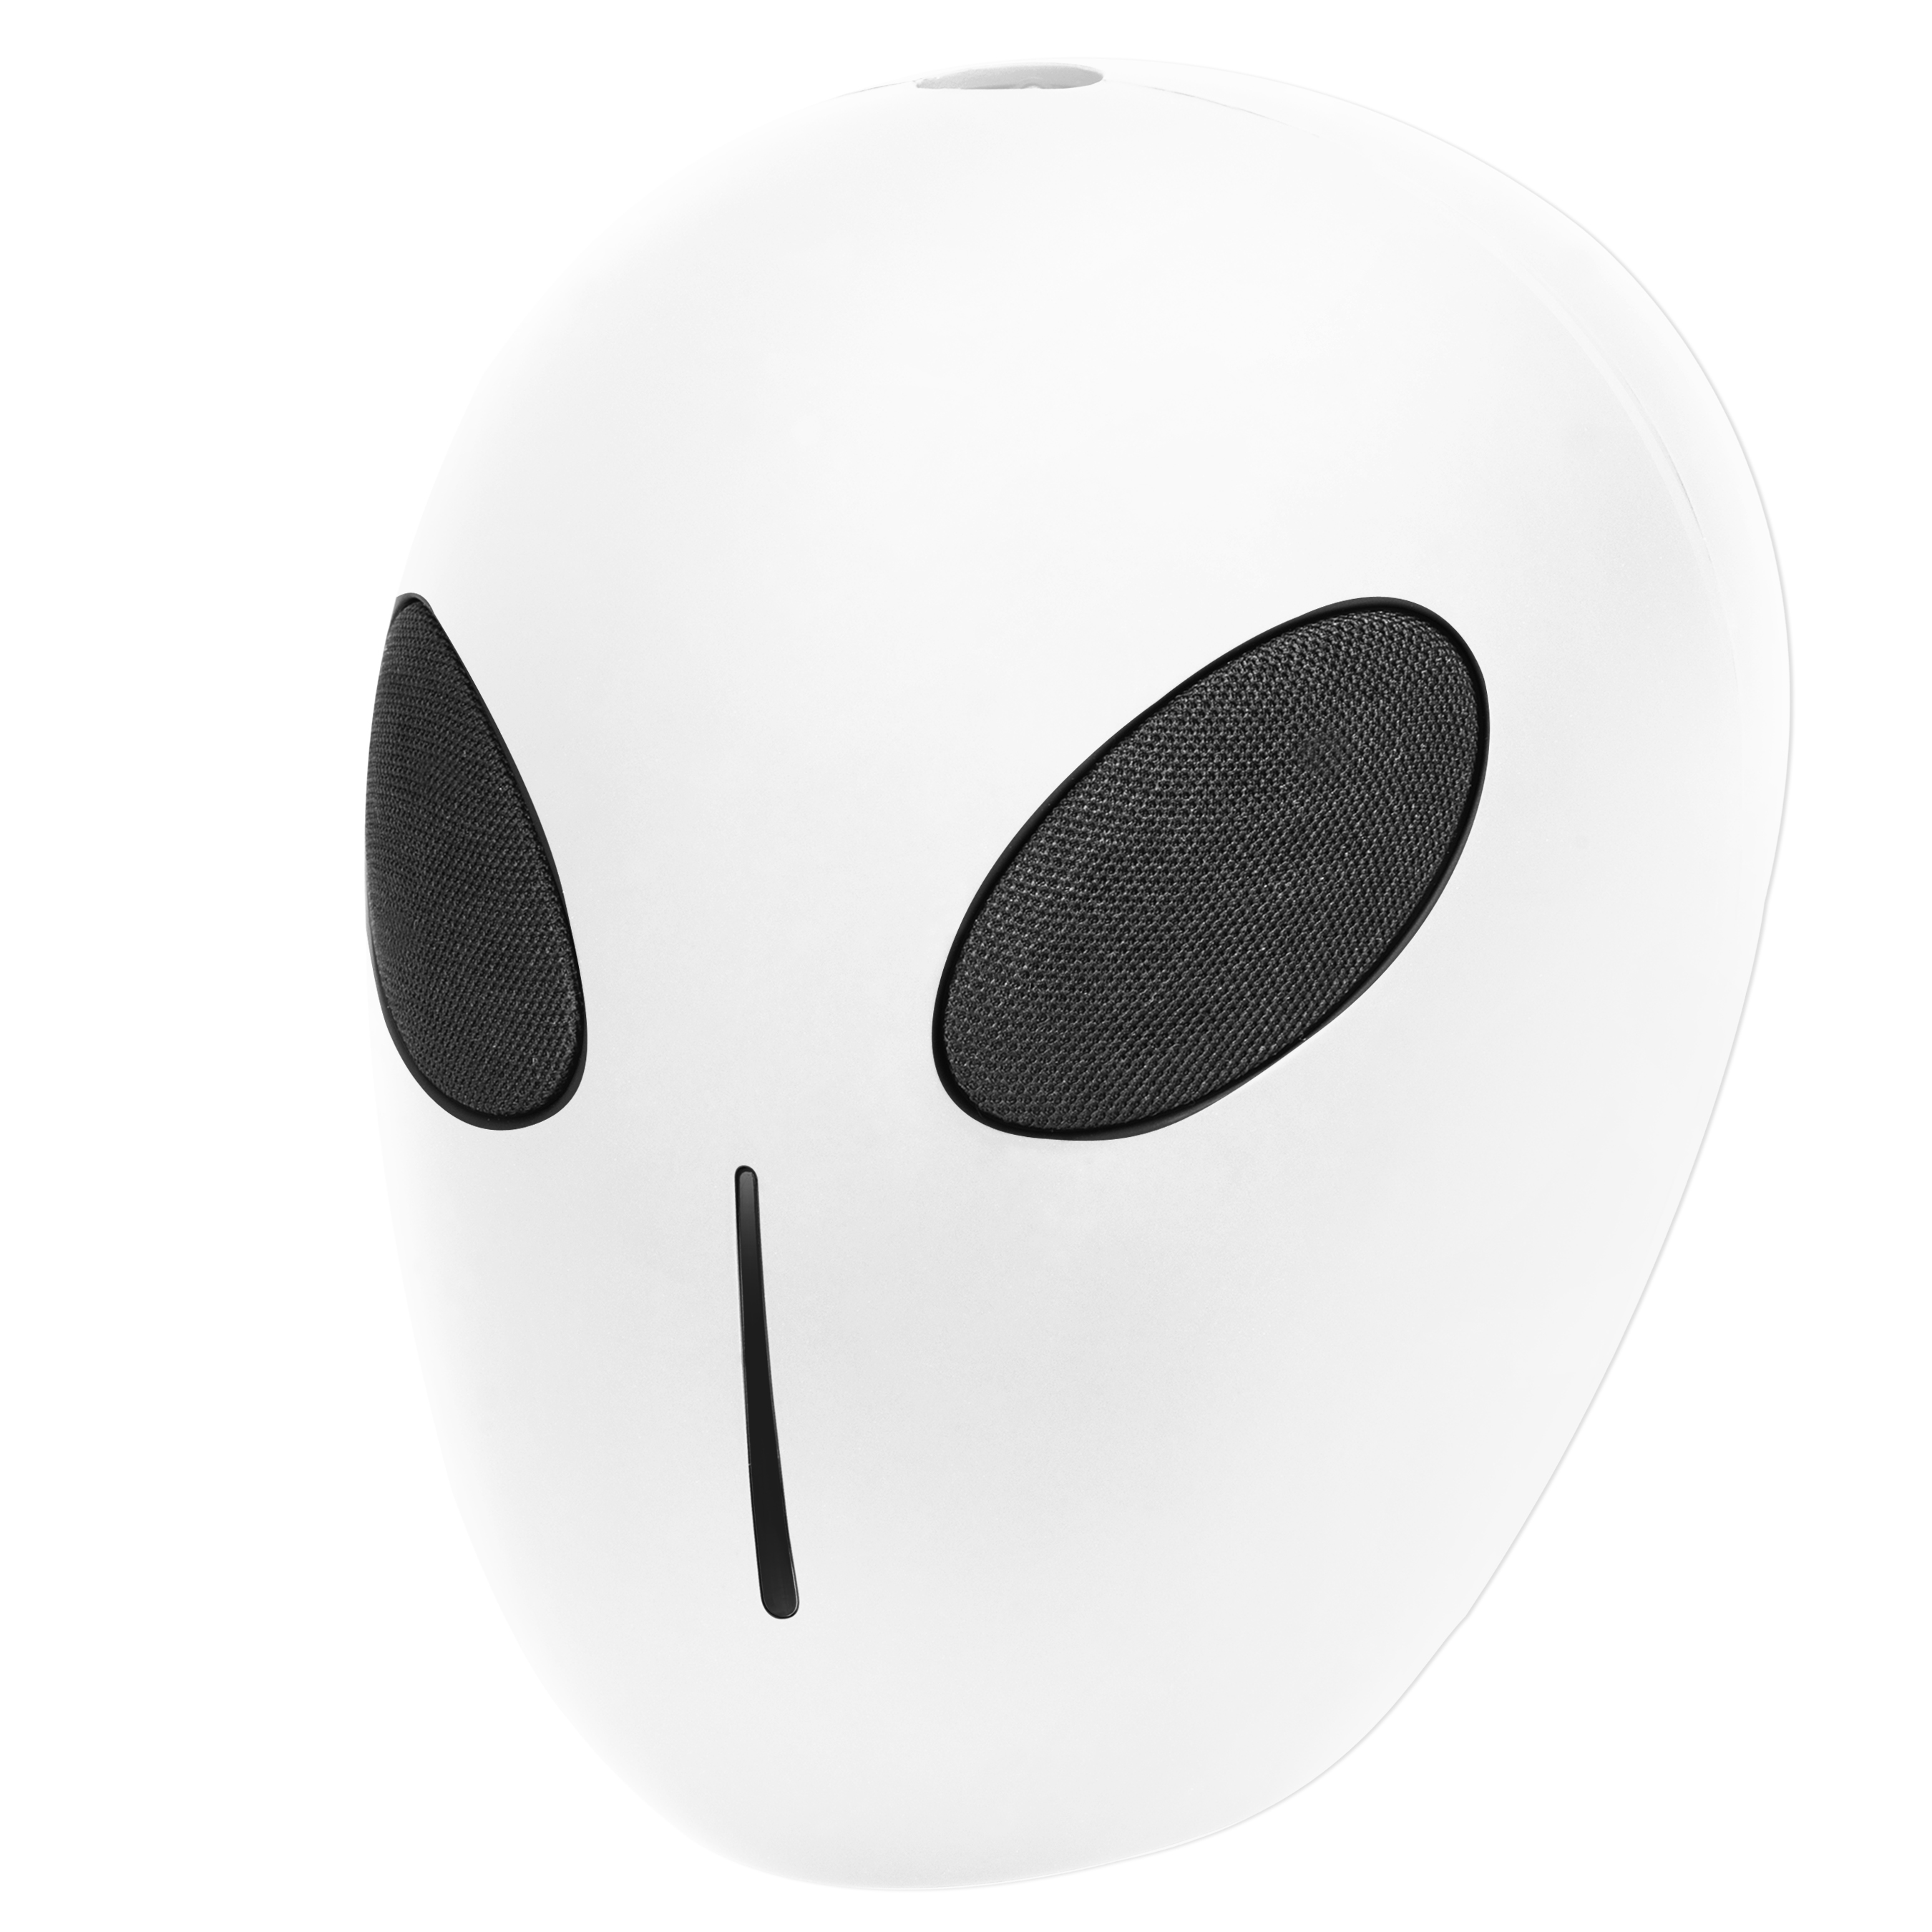 Alien Bluetooth Speaker With 6-8-Hour Playing Time, Built-In Mic, Handsfree Call, Aux Line, Usb Flash Drive, Micro Sd Card, Hd Stereo Sound And Bass(White)